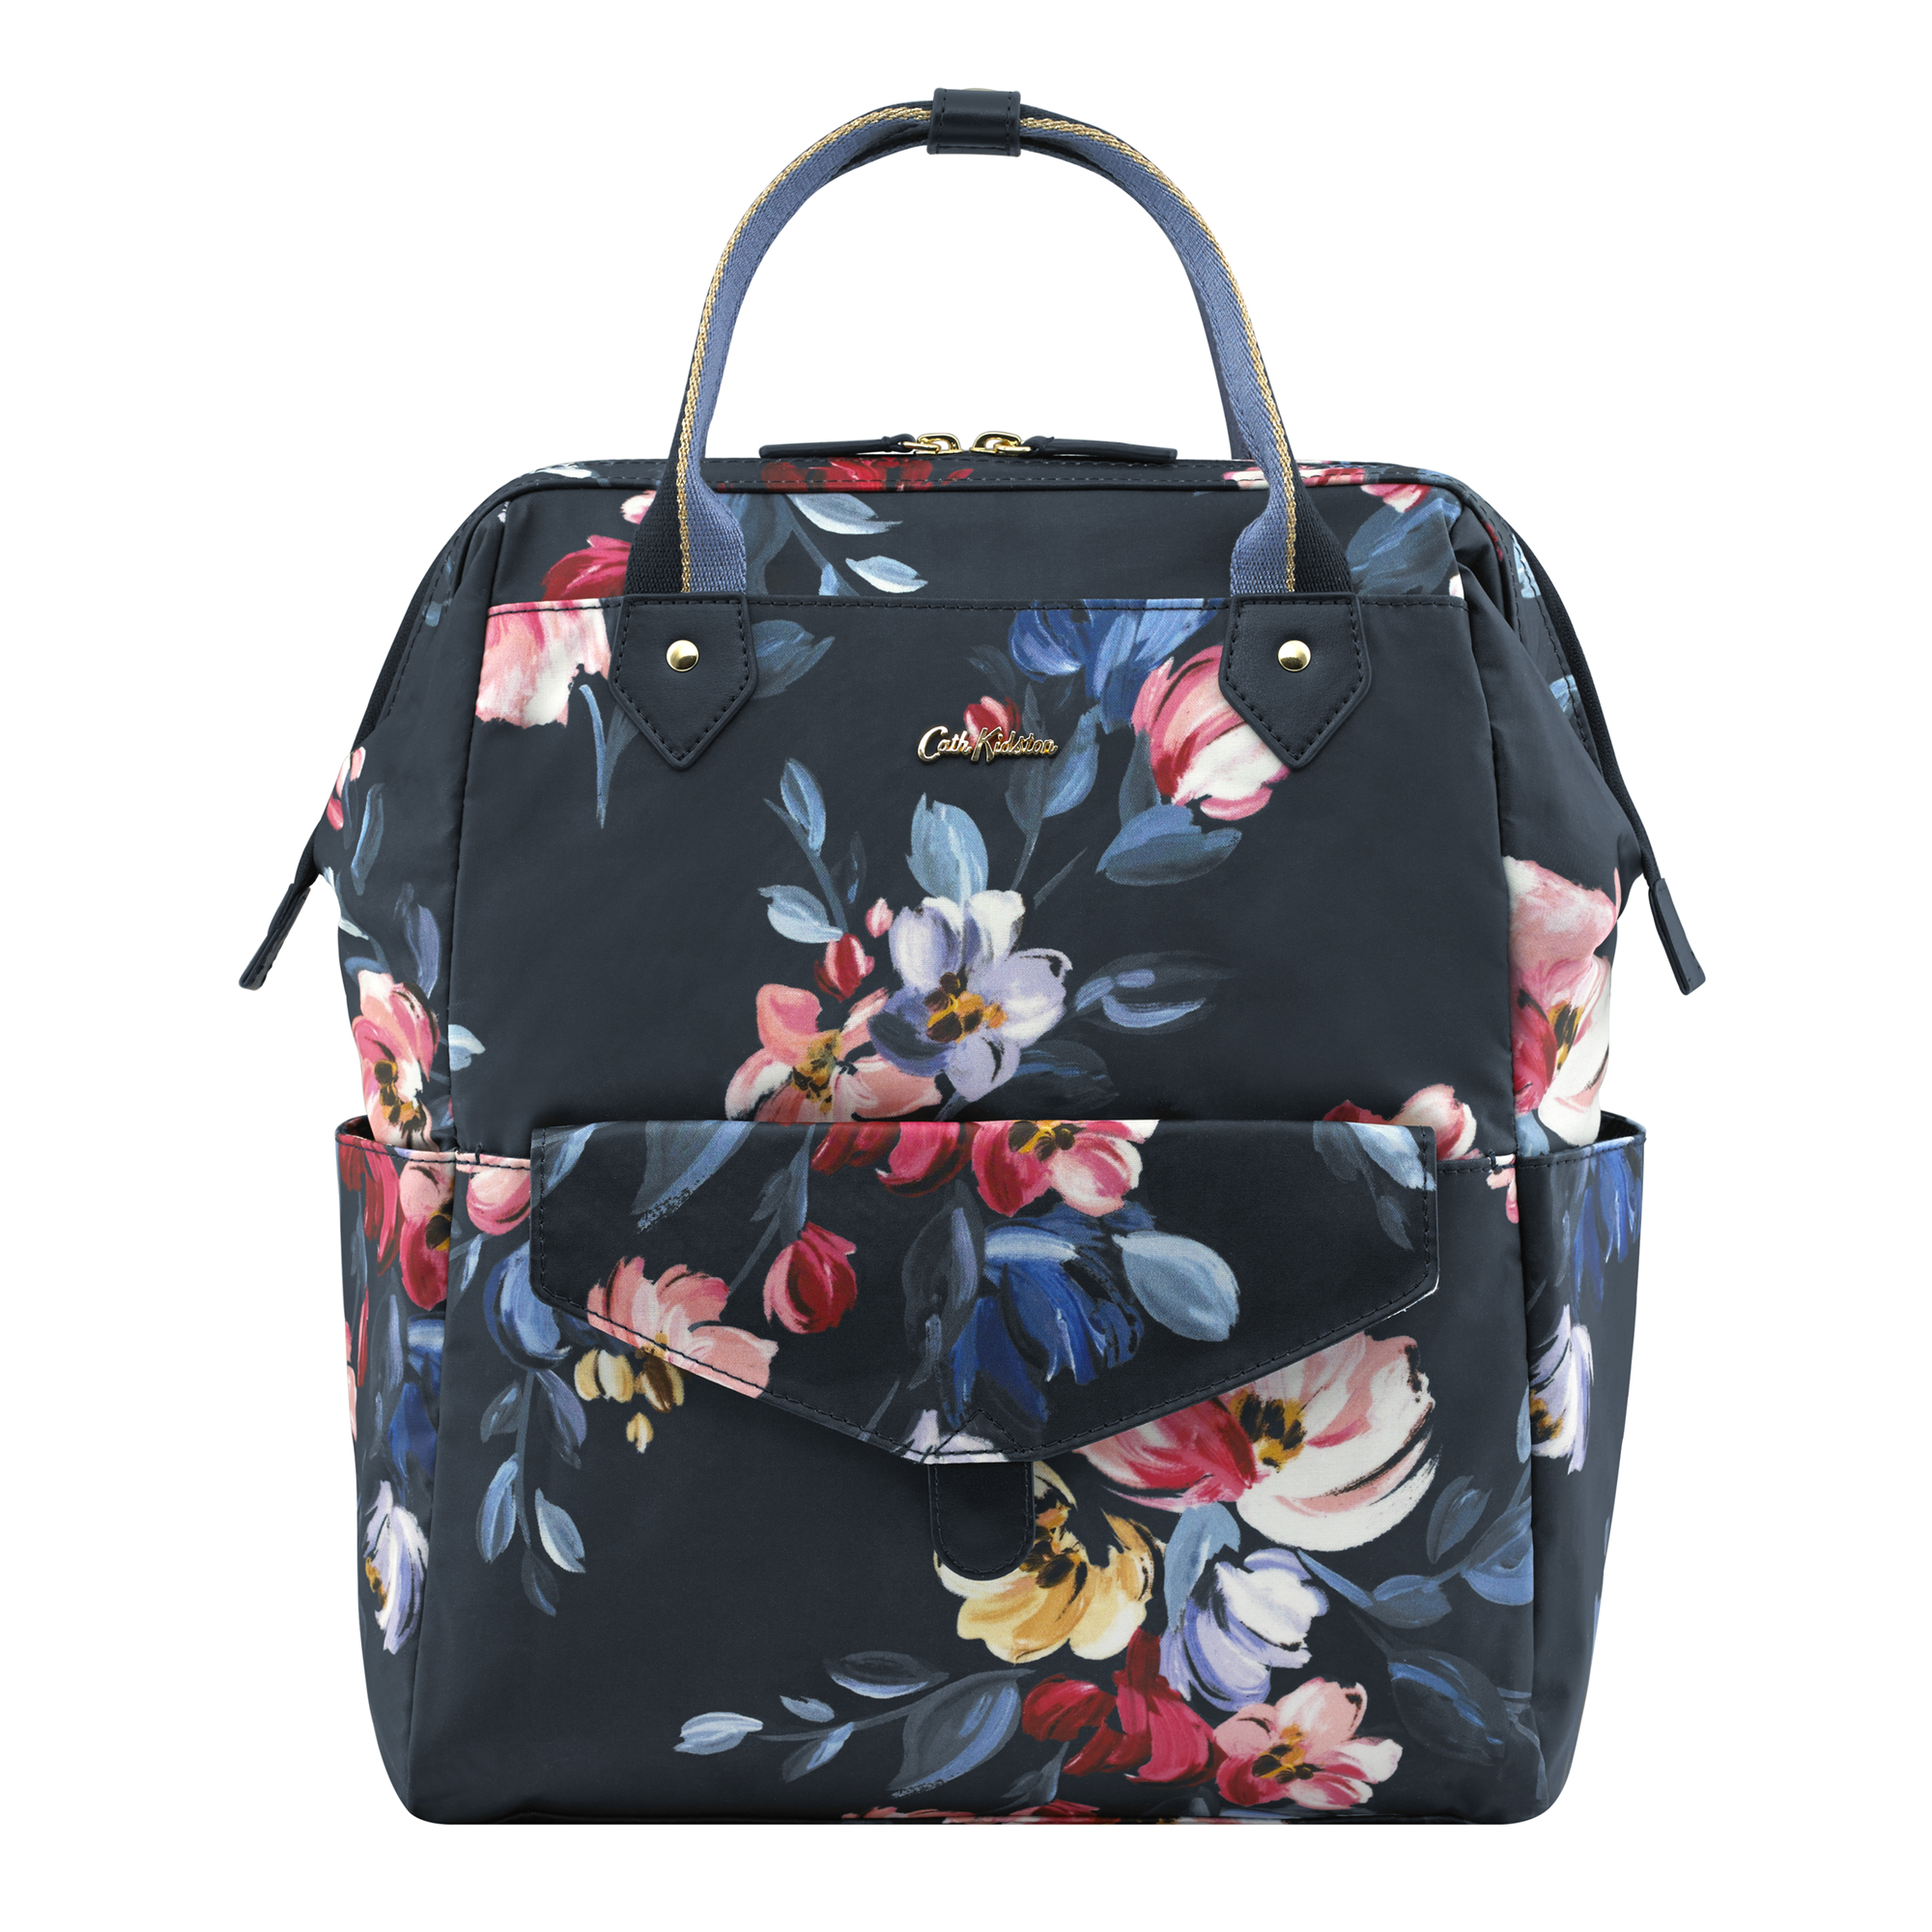 34d9a059708 Cath Kidston Paintbox Flowers Frame Backpack. Knees Home and Electrical